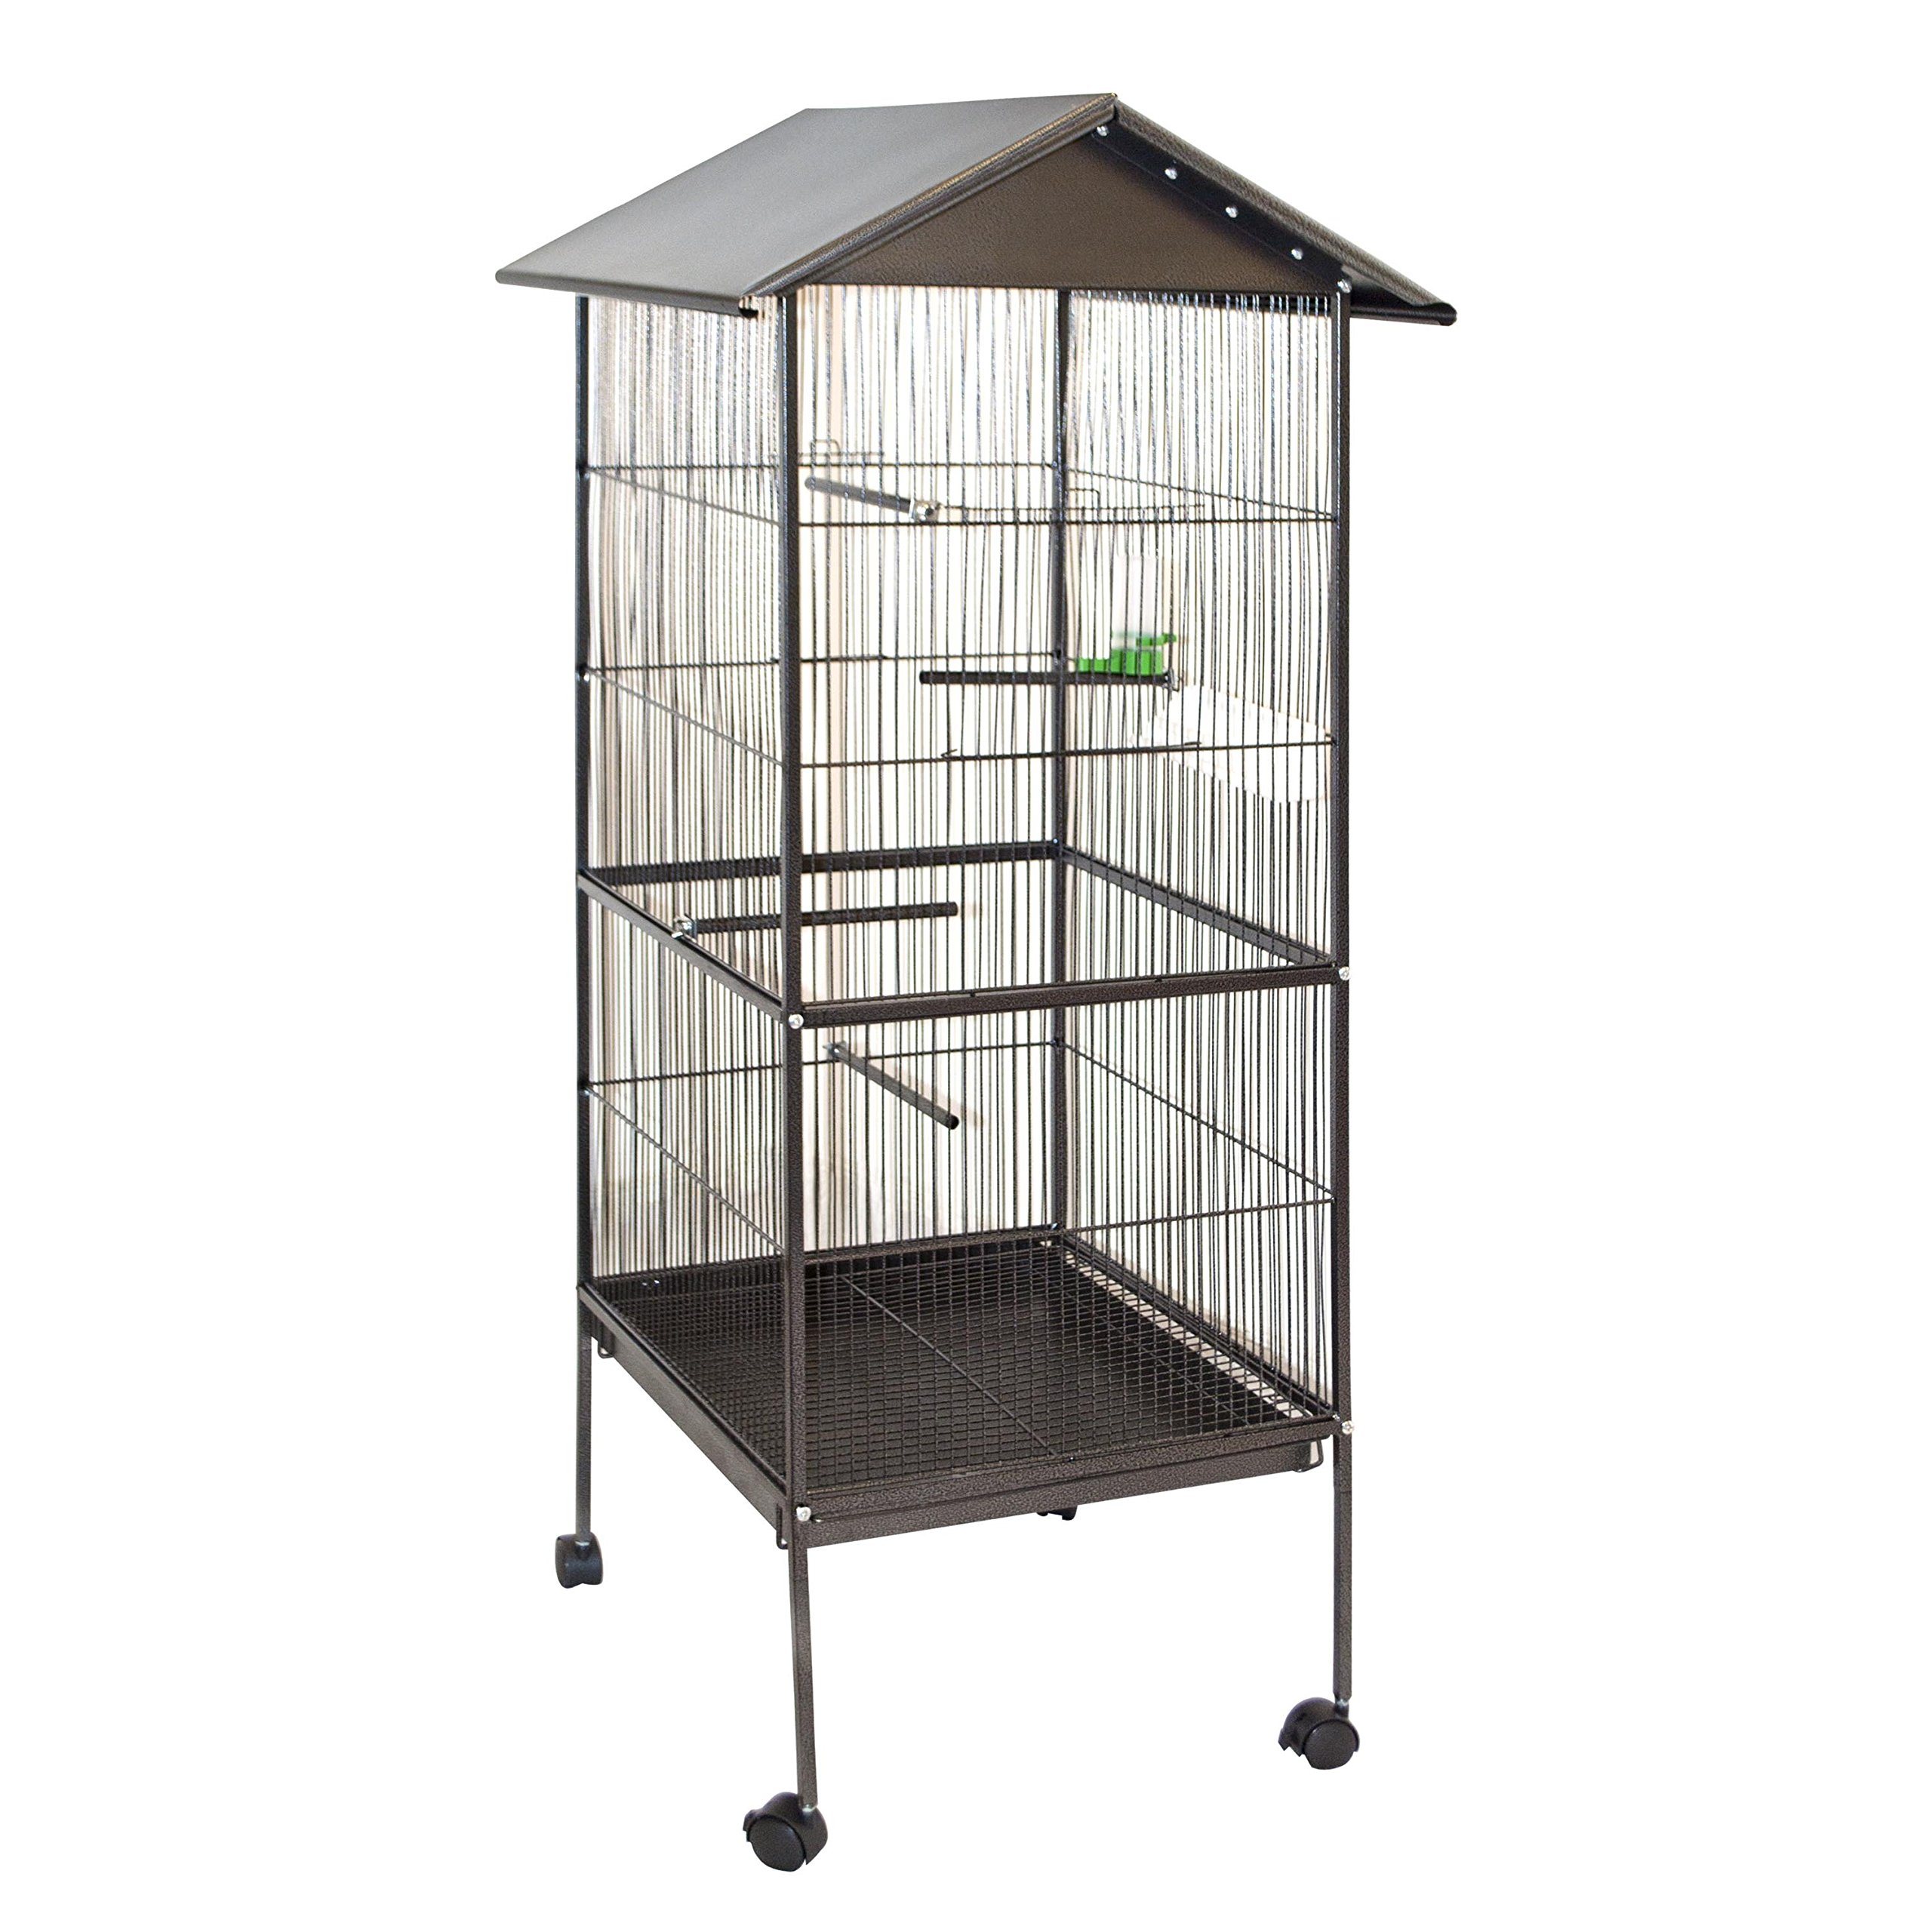 ALEKO BC002 Large Steel 20X20X61 Inch Bird Cage Pet House Parrot Macaw Finch Cockatiel Conure Cage